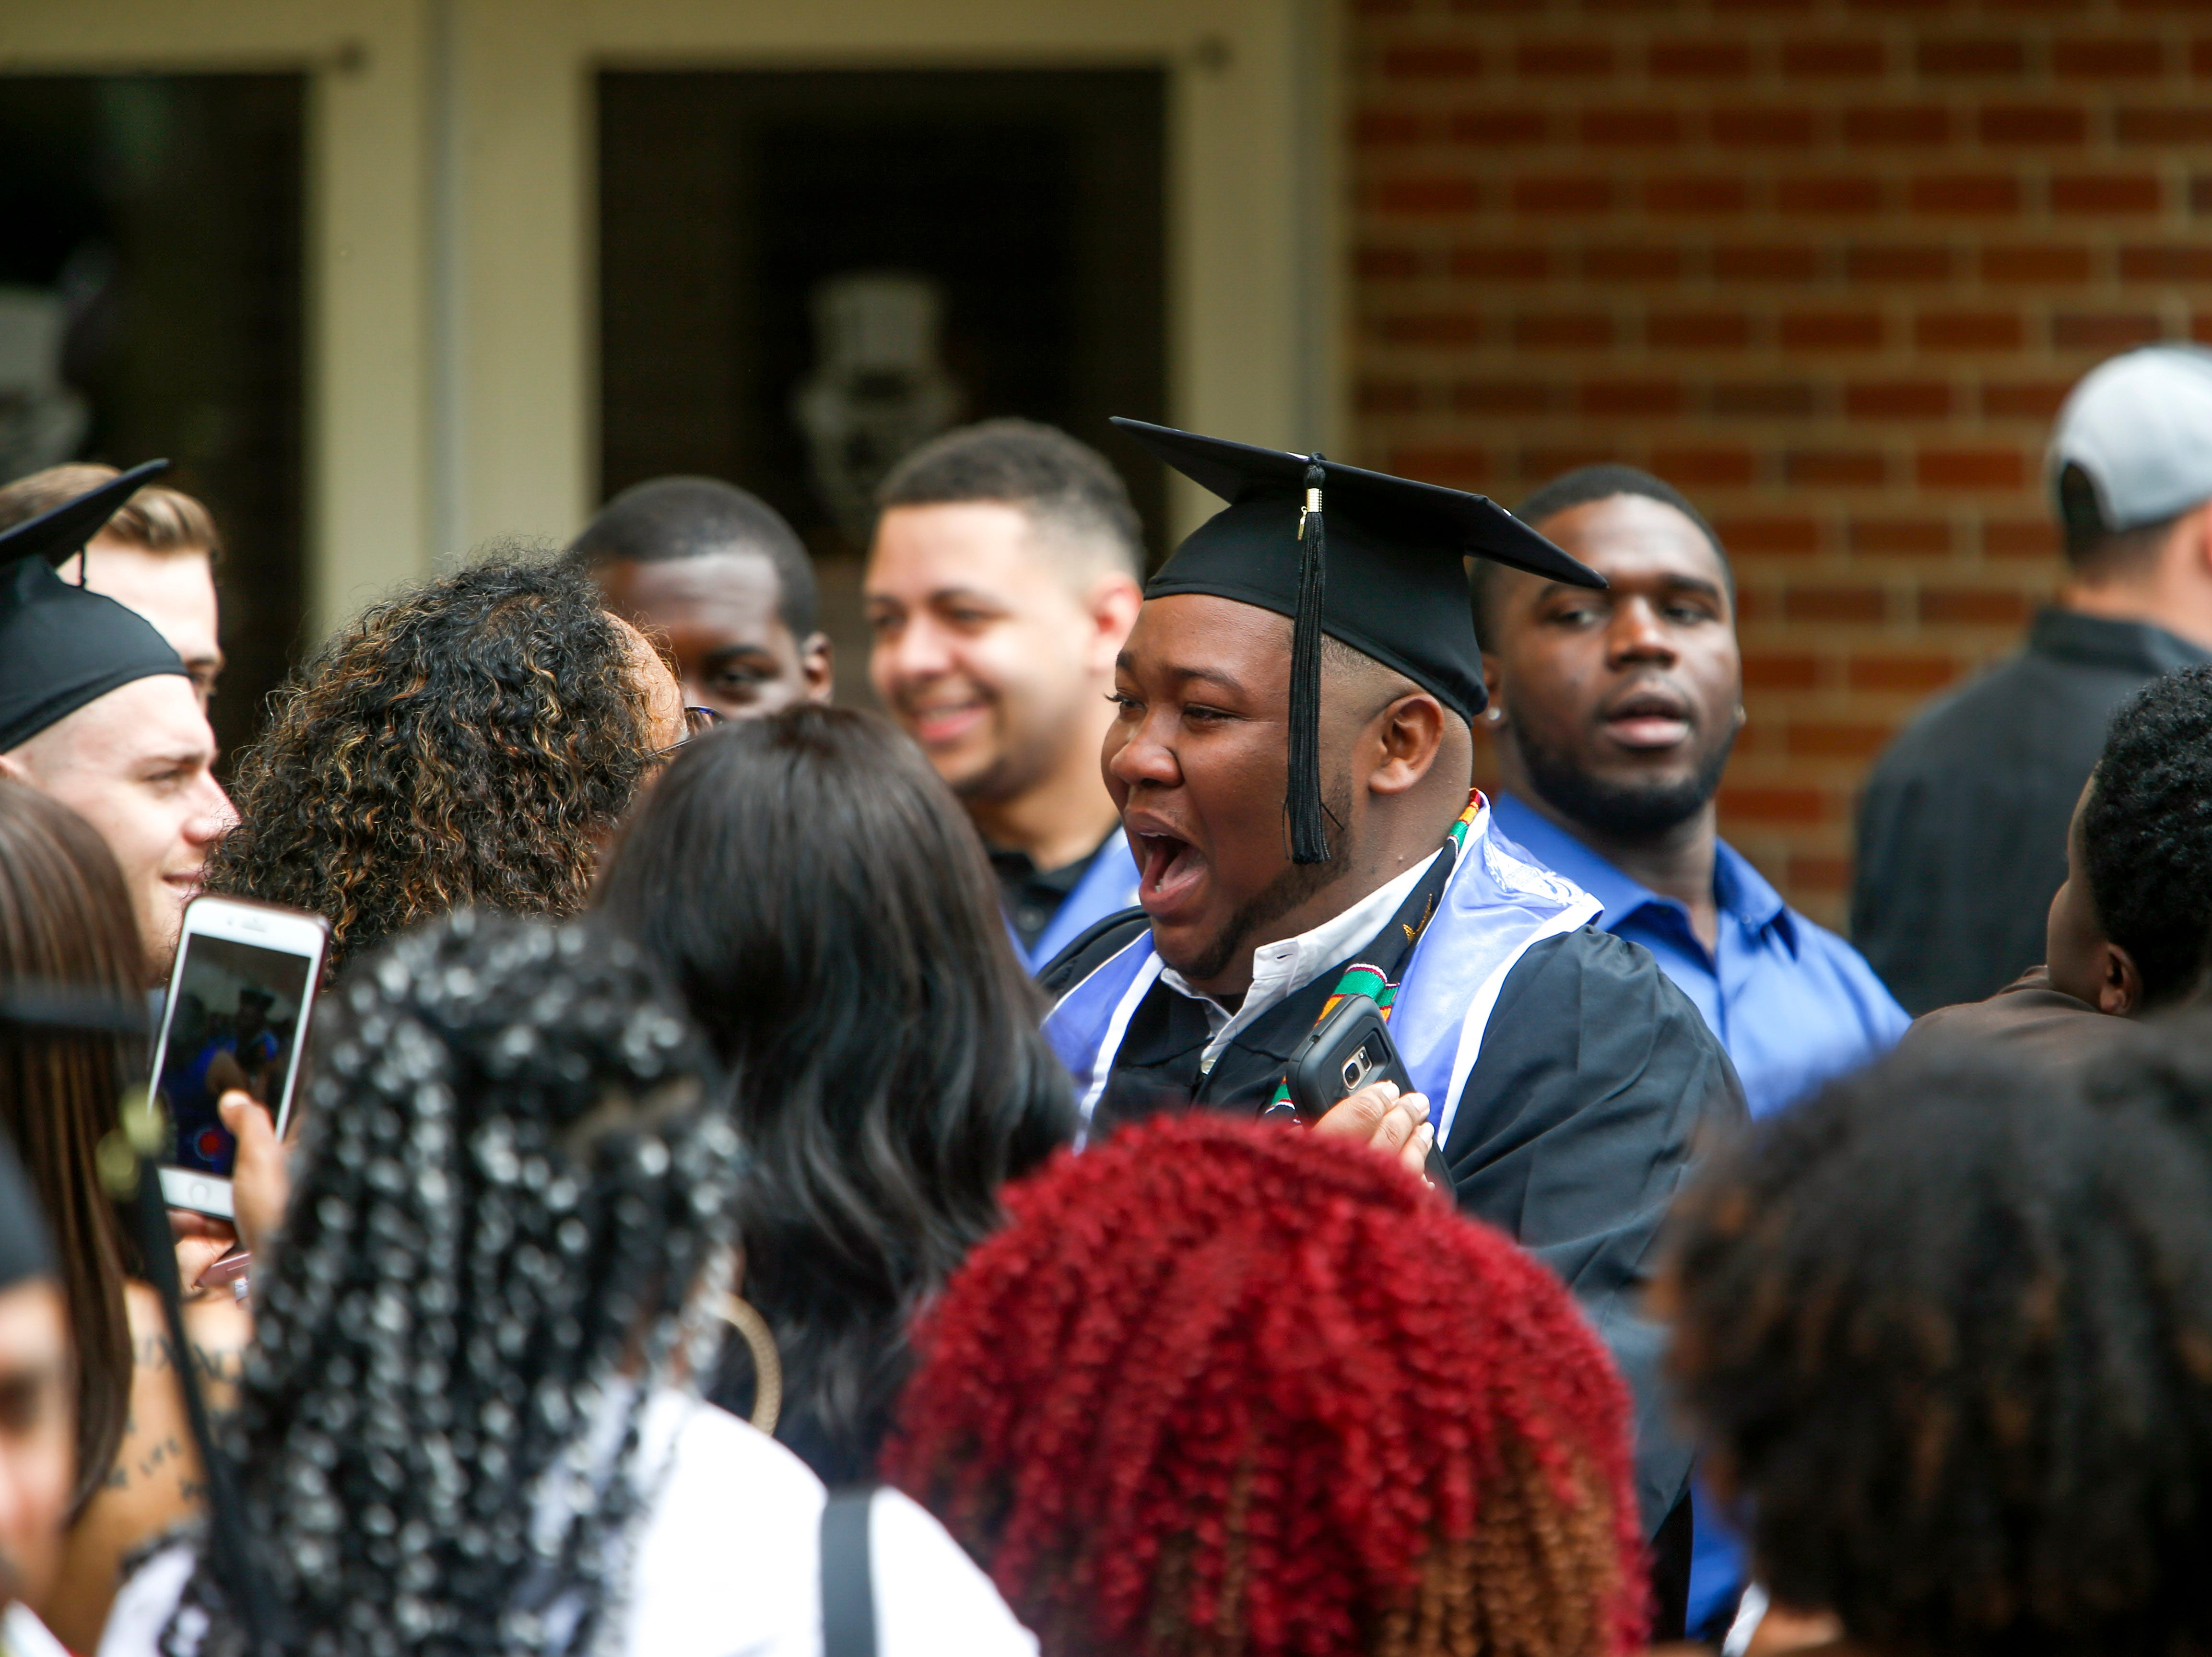 Students celebrate with family and friends outside at the Austin Peay spring commencement ceremony 2019 for College of Business and College of STEM at Winfield Dunn Center in Clarksville, Tenn., on Friday, May 3, 2019.